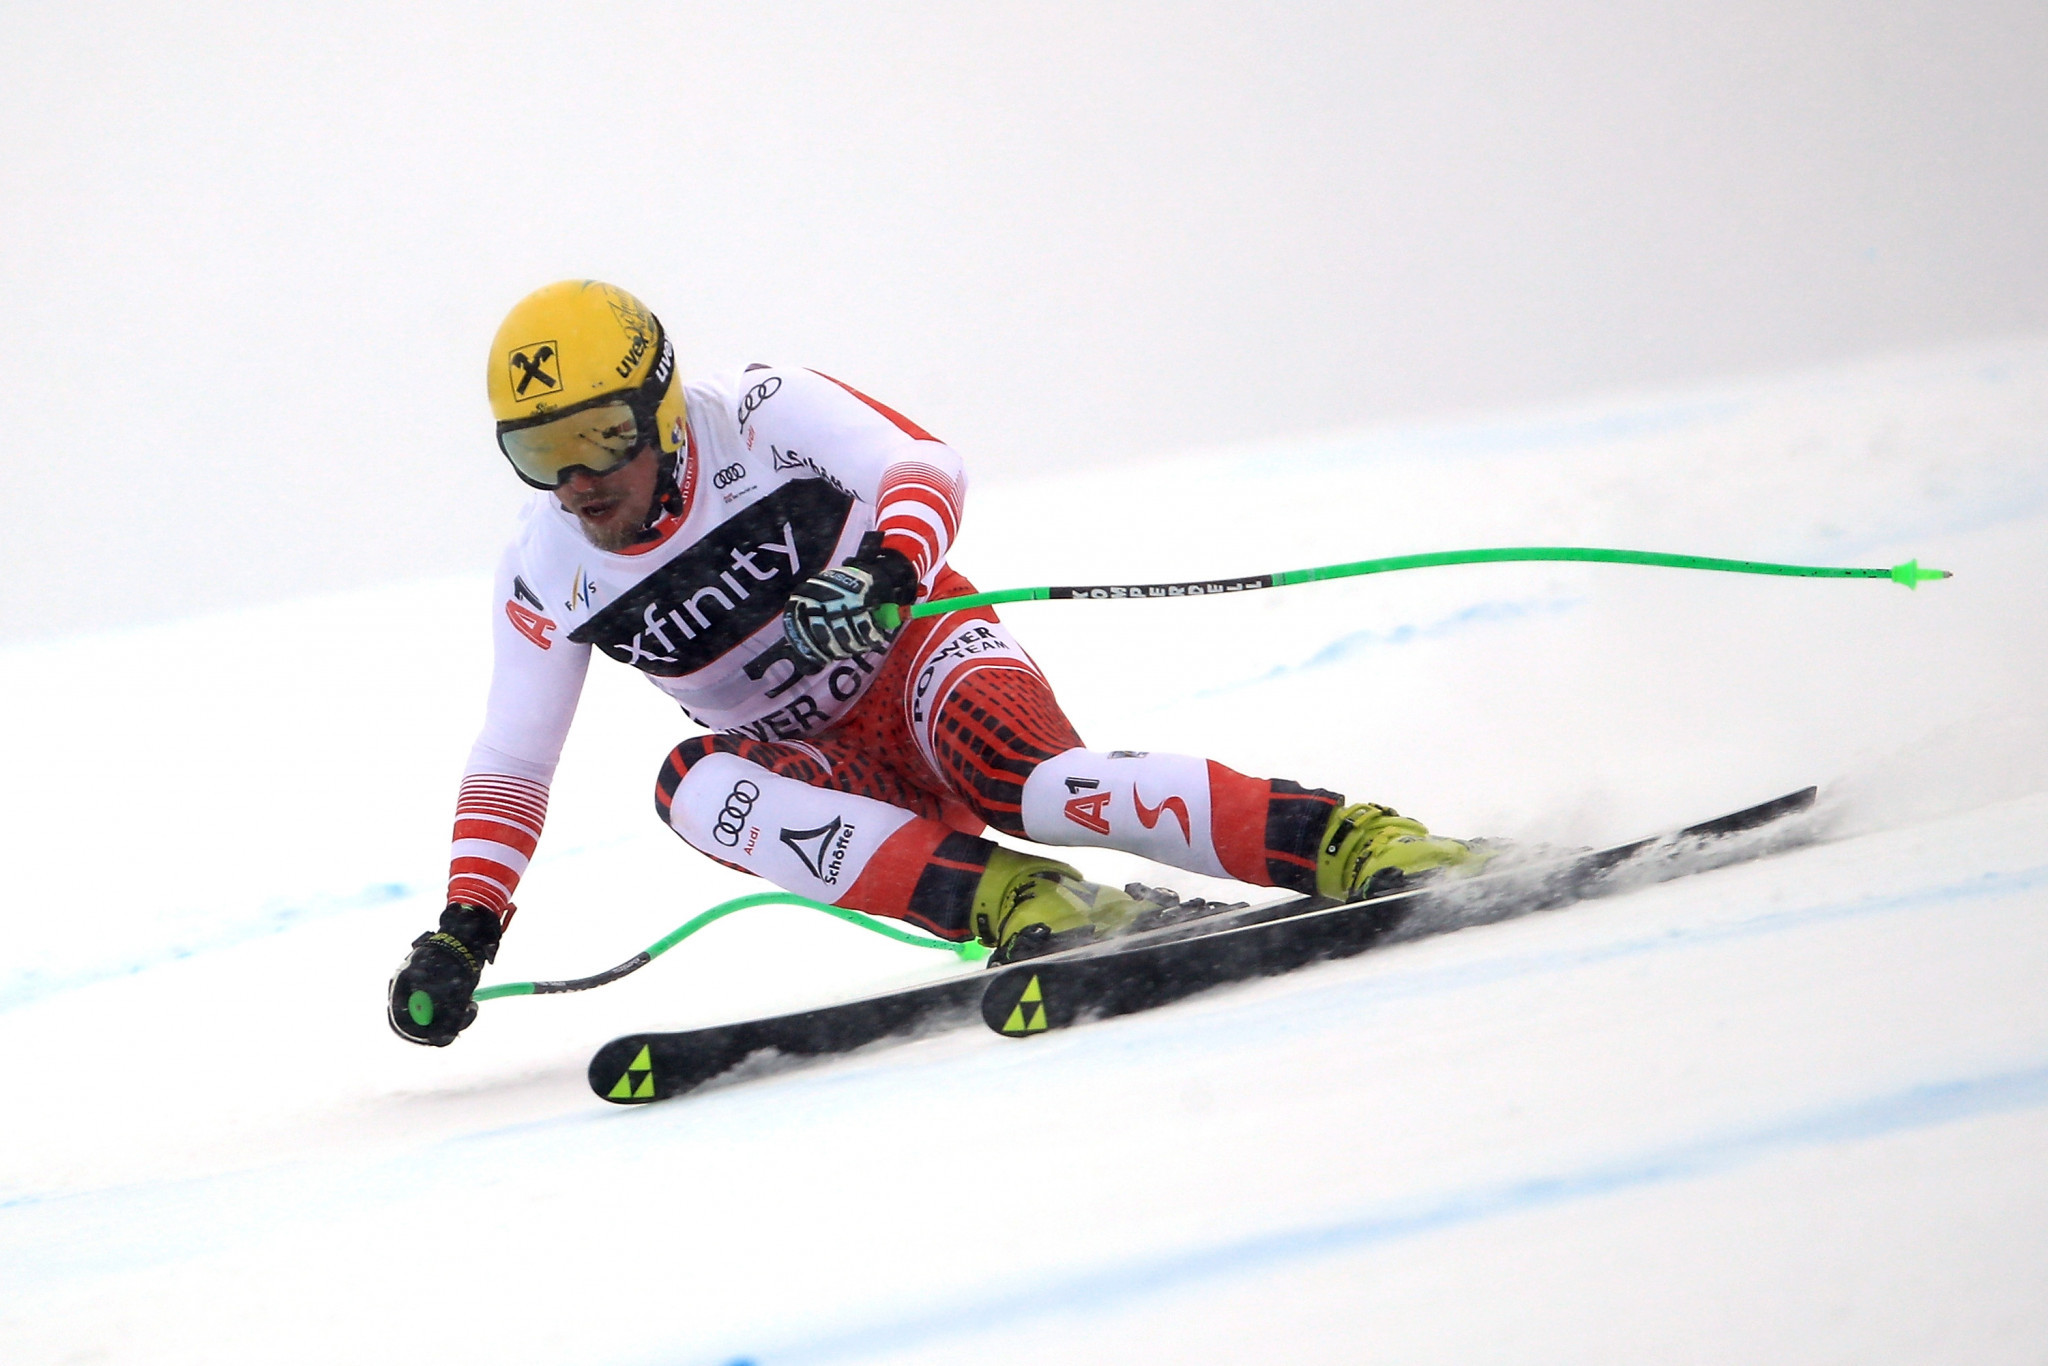 Max Franz secured victory in the men's super-G on the Birds of Prey course in Beaver Creek ©Getty Images